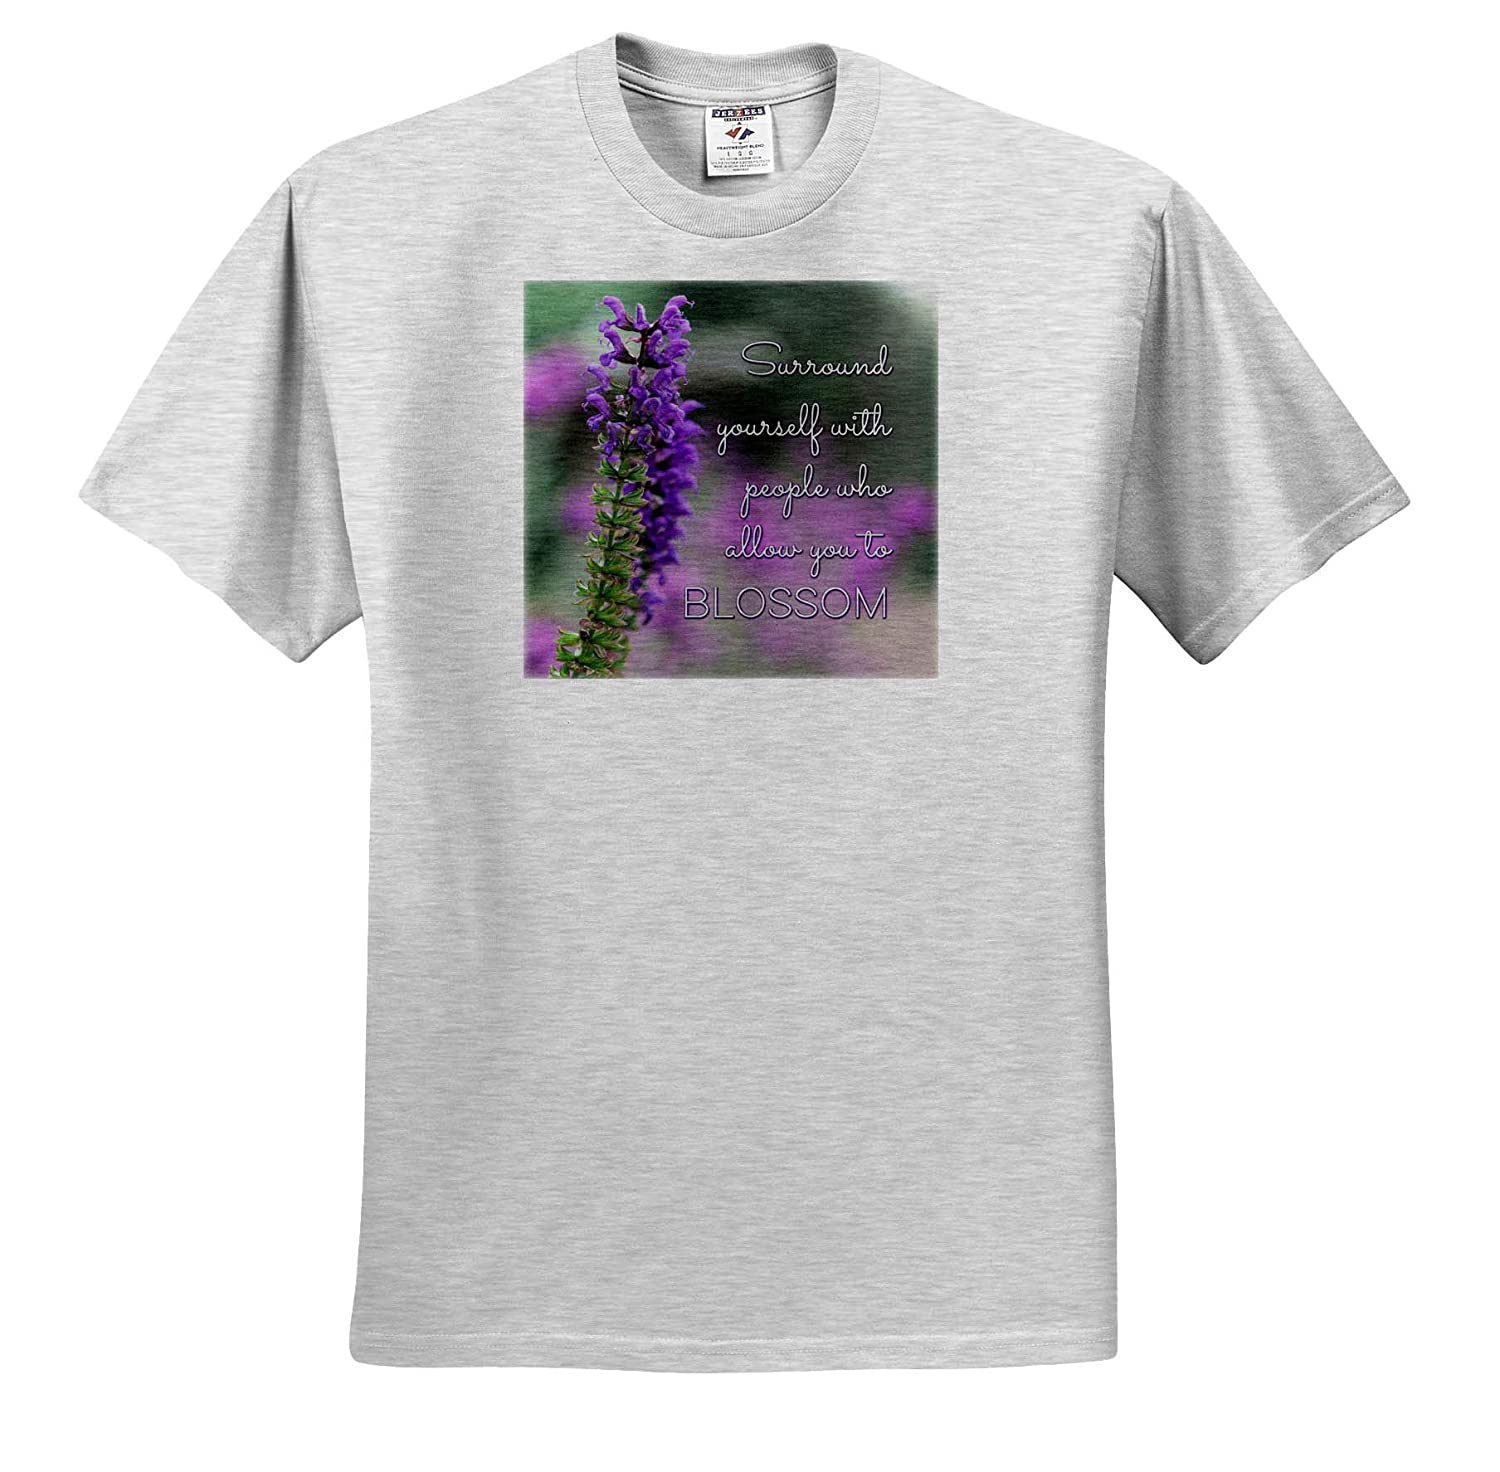 3dRose Stamp City - T-Shirts Surround Yourself with People who Allow You to Blossom Typography Salvia Plant